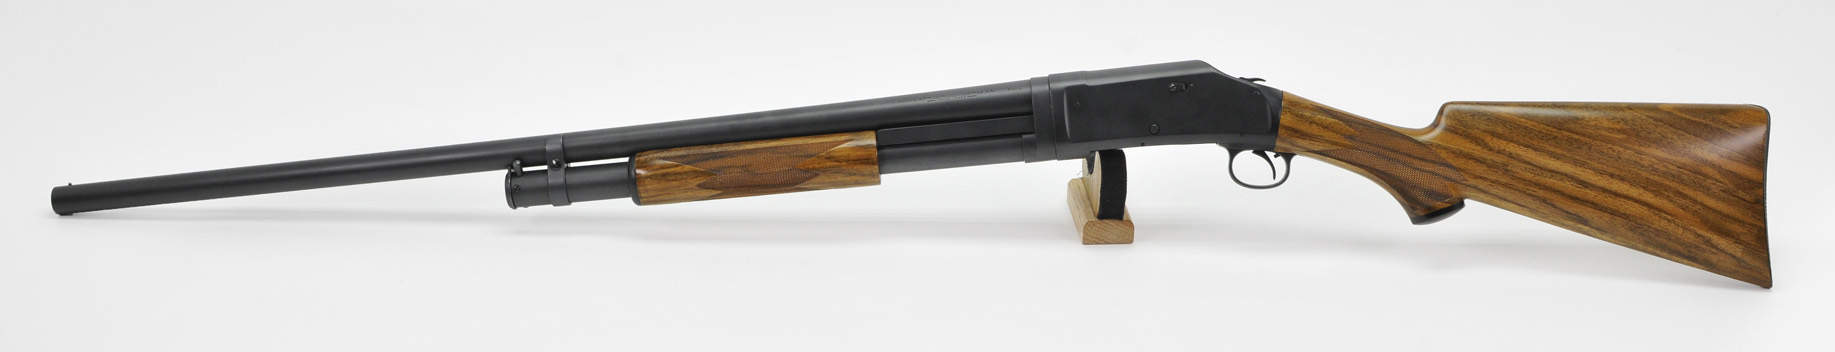 Winchester Model 97 (1897) 12 Gauge Slide-Action Shotgun  Re-stocked And  Re-blued  Beautiful Classic